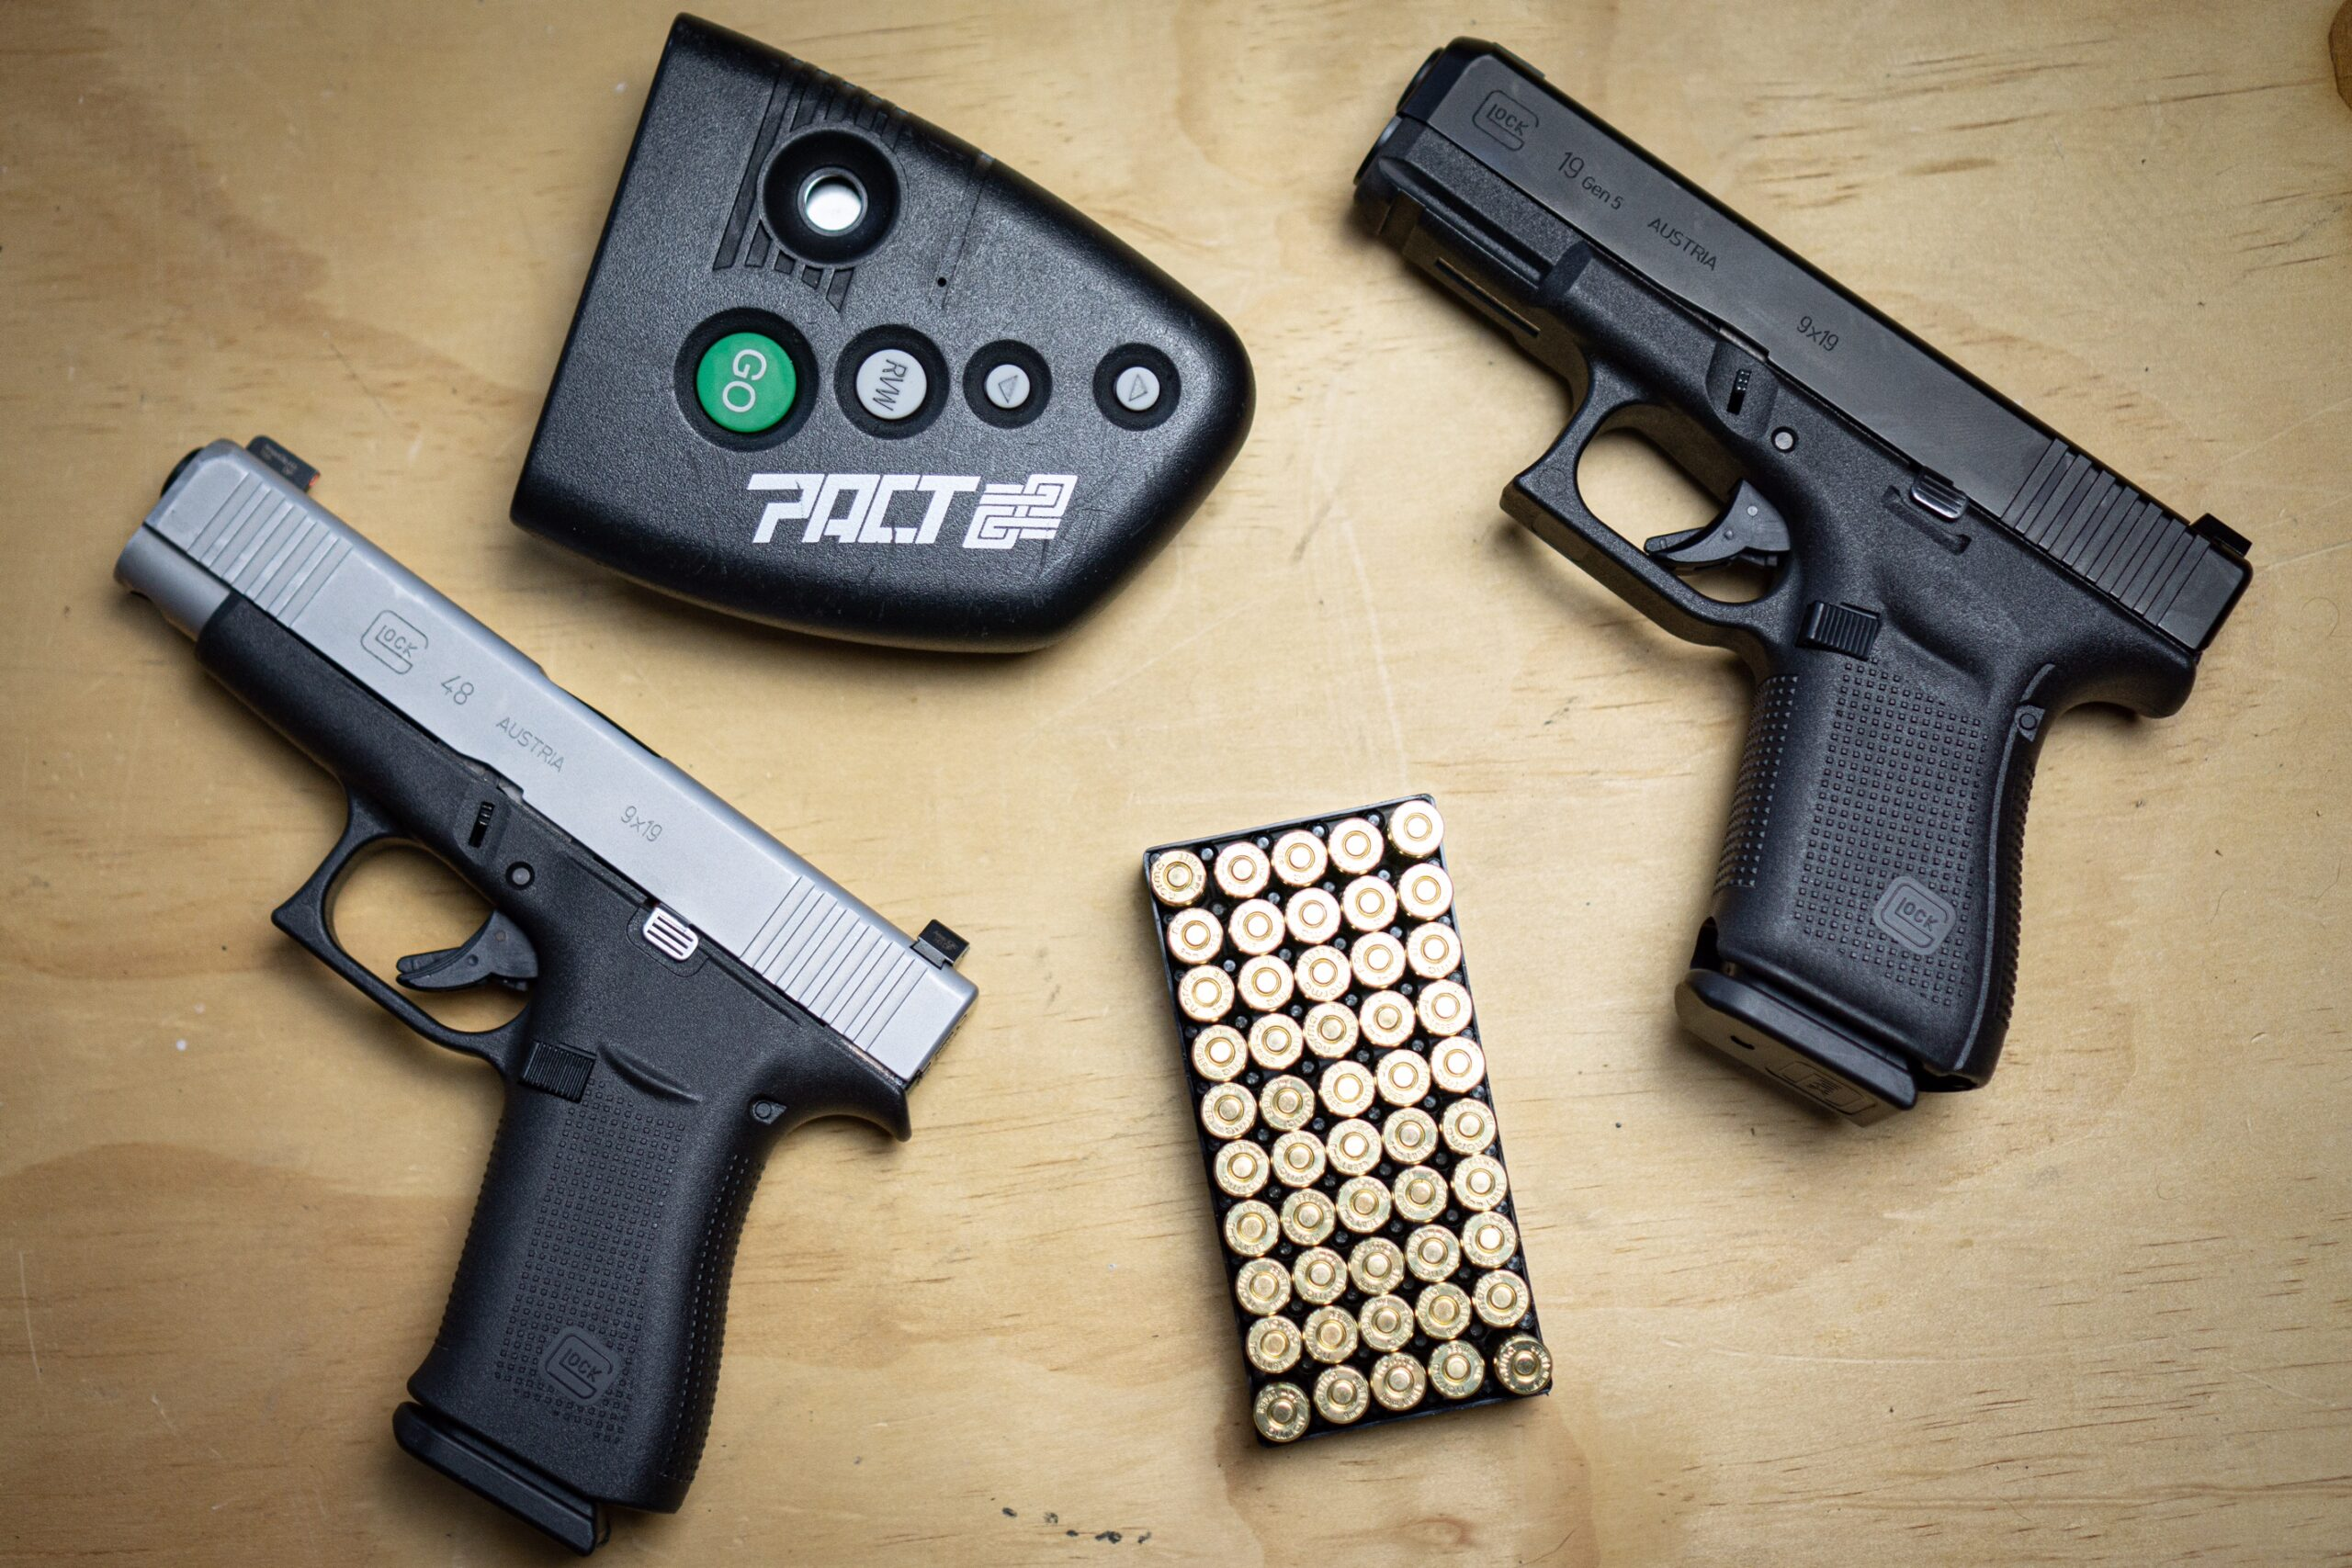 Glock 48 And Glock 19 with shot timer and ammo on a table